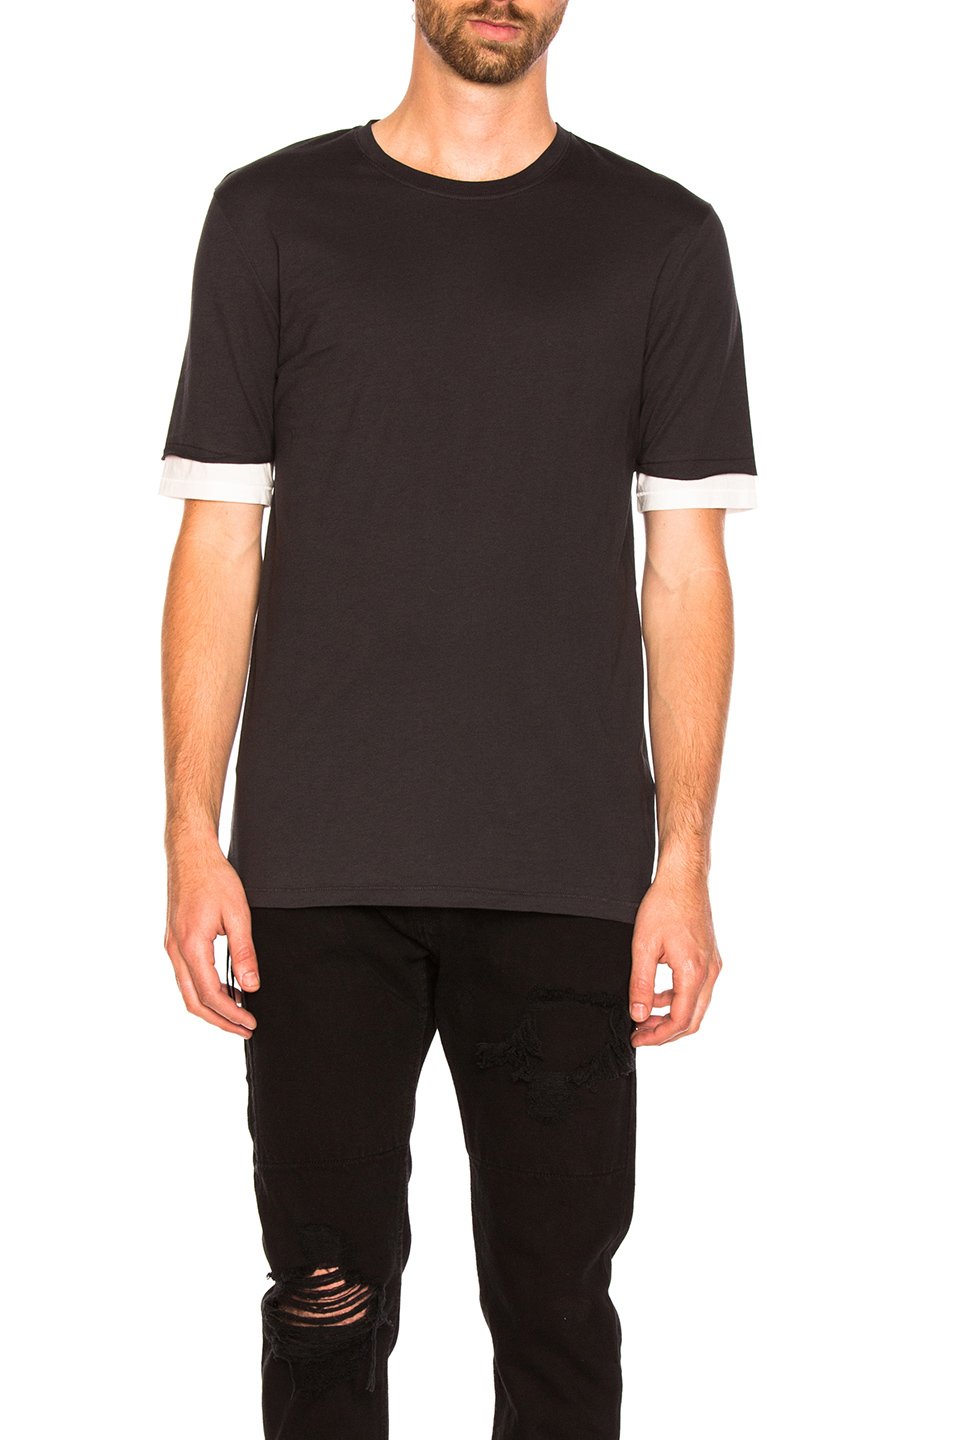 3.1 phillip lim Double Layer Tee in Black